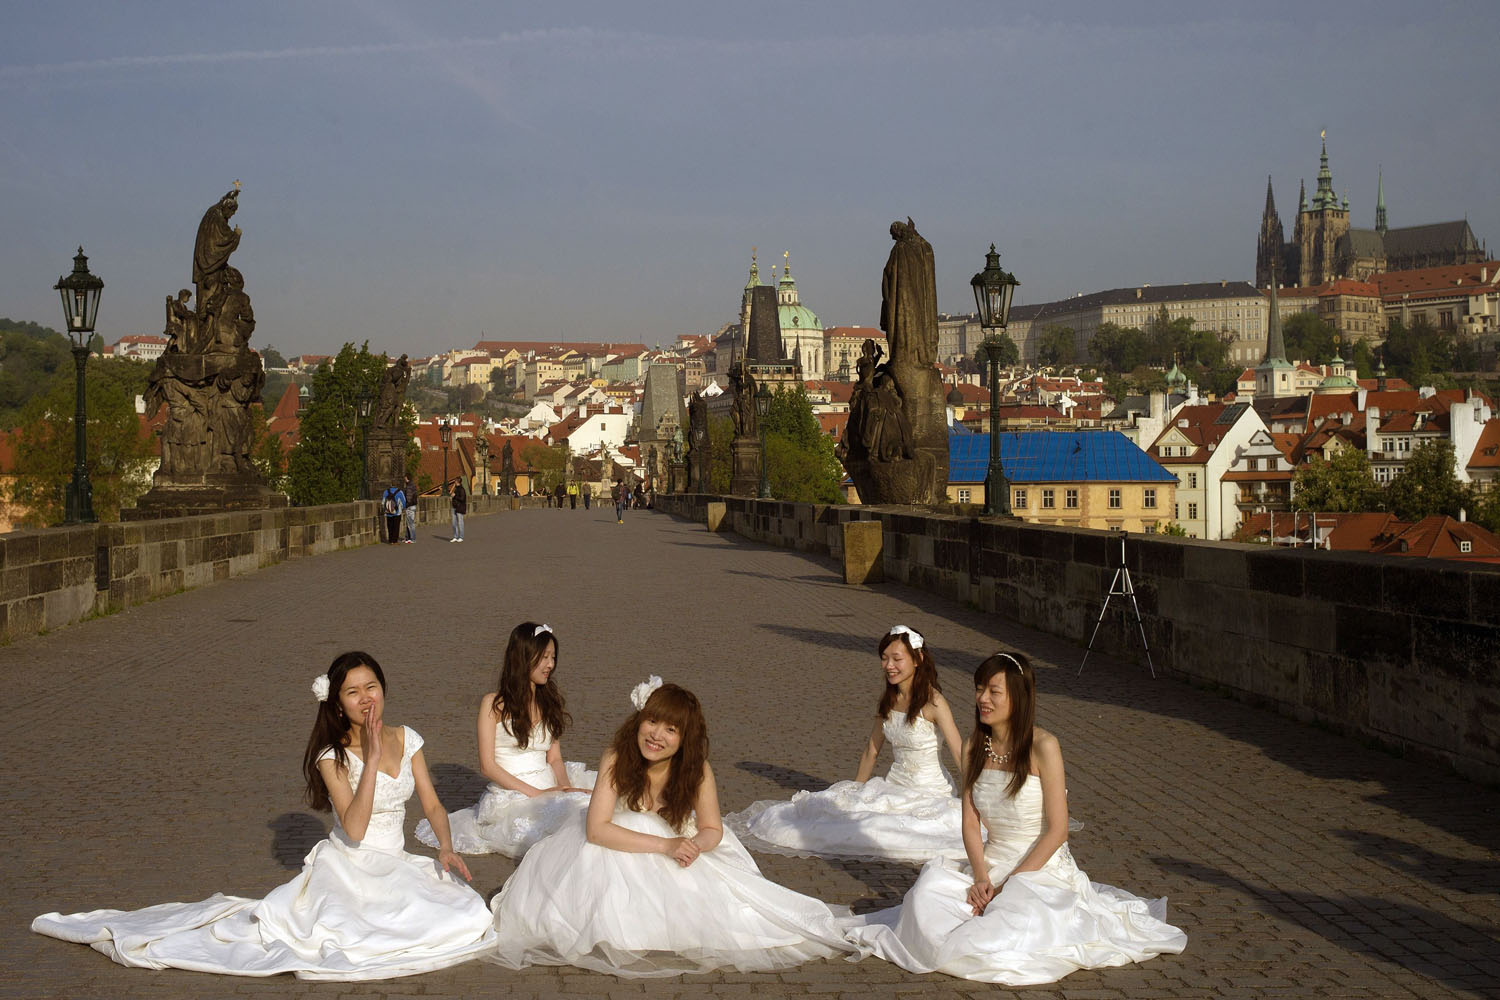 Newly married brides wait for their photo to be taken on the landmark Charles Bridge in Prague,  Czech Republic, on May 6, 2014.